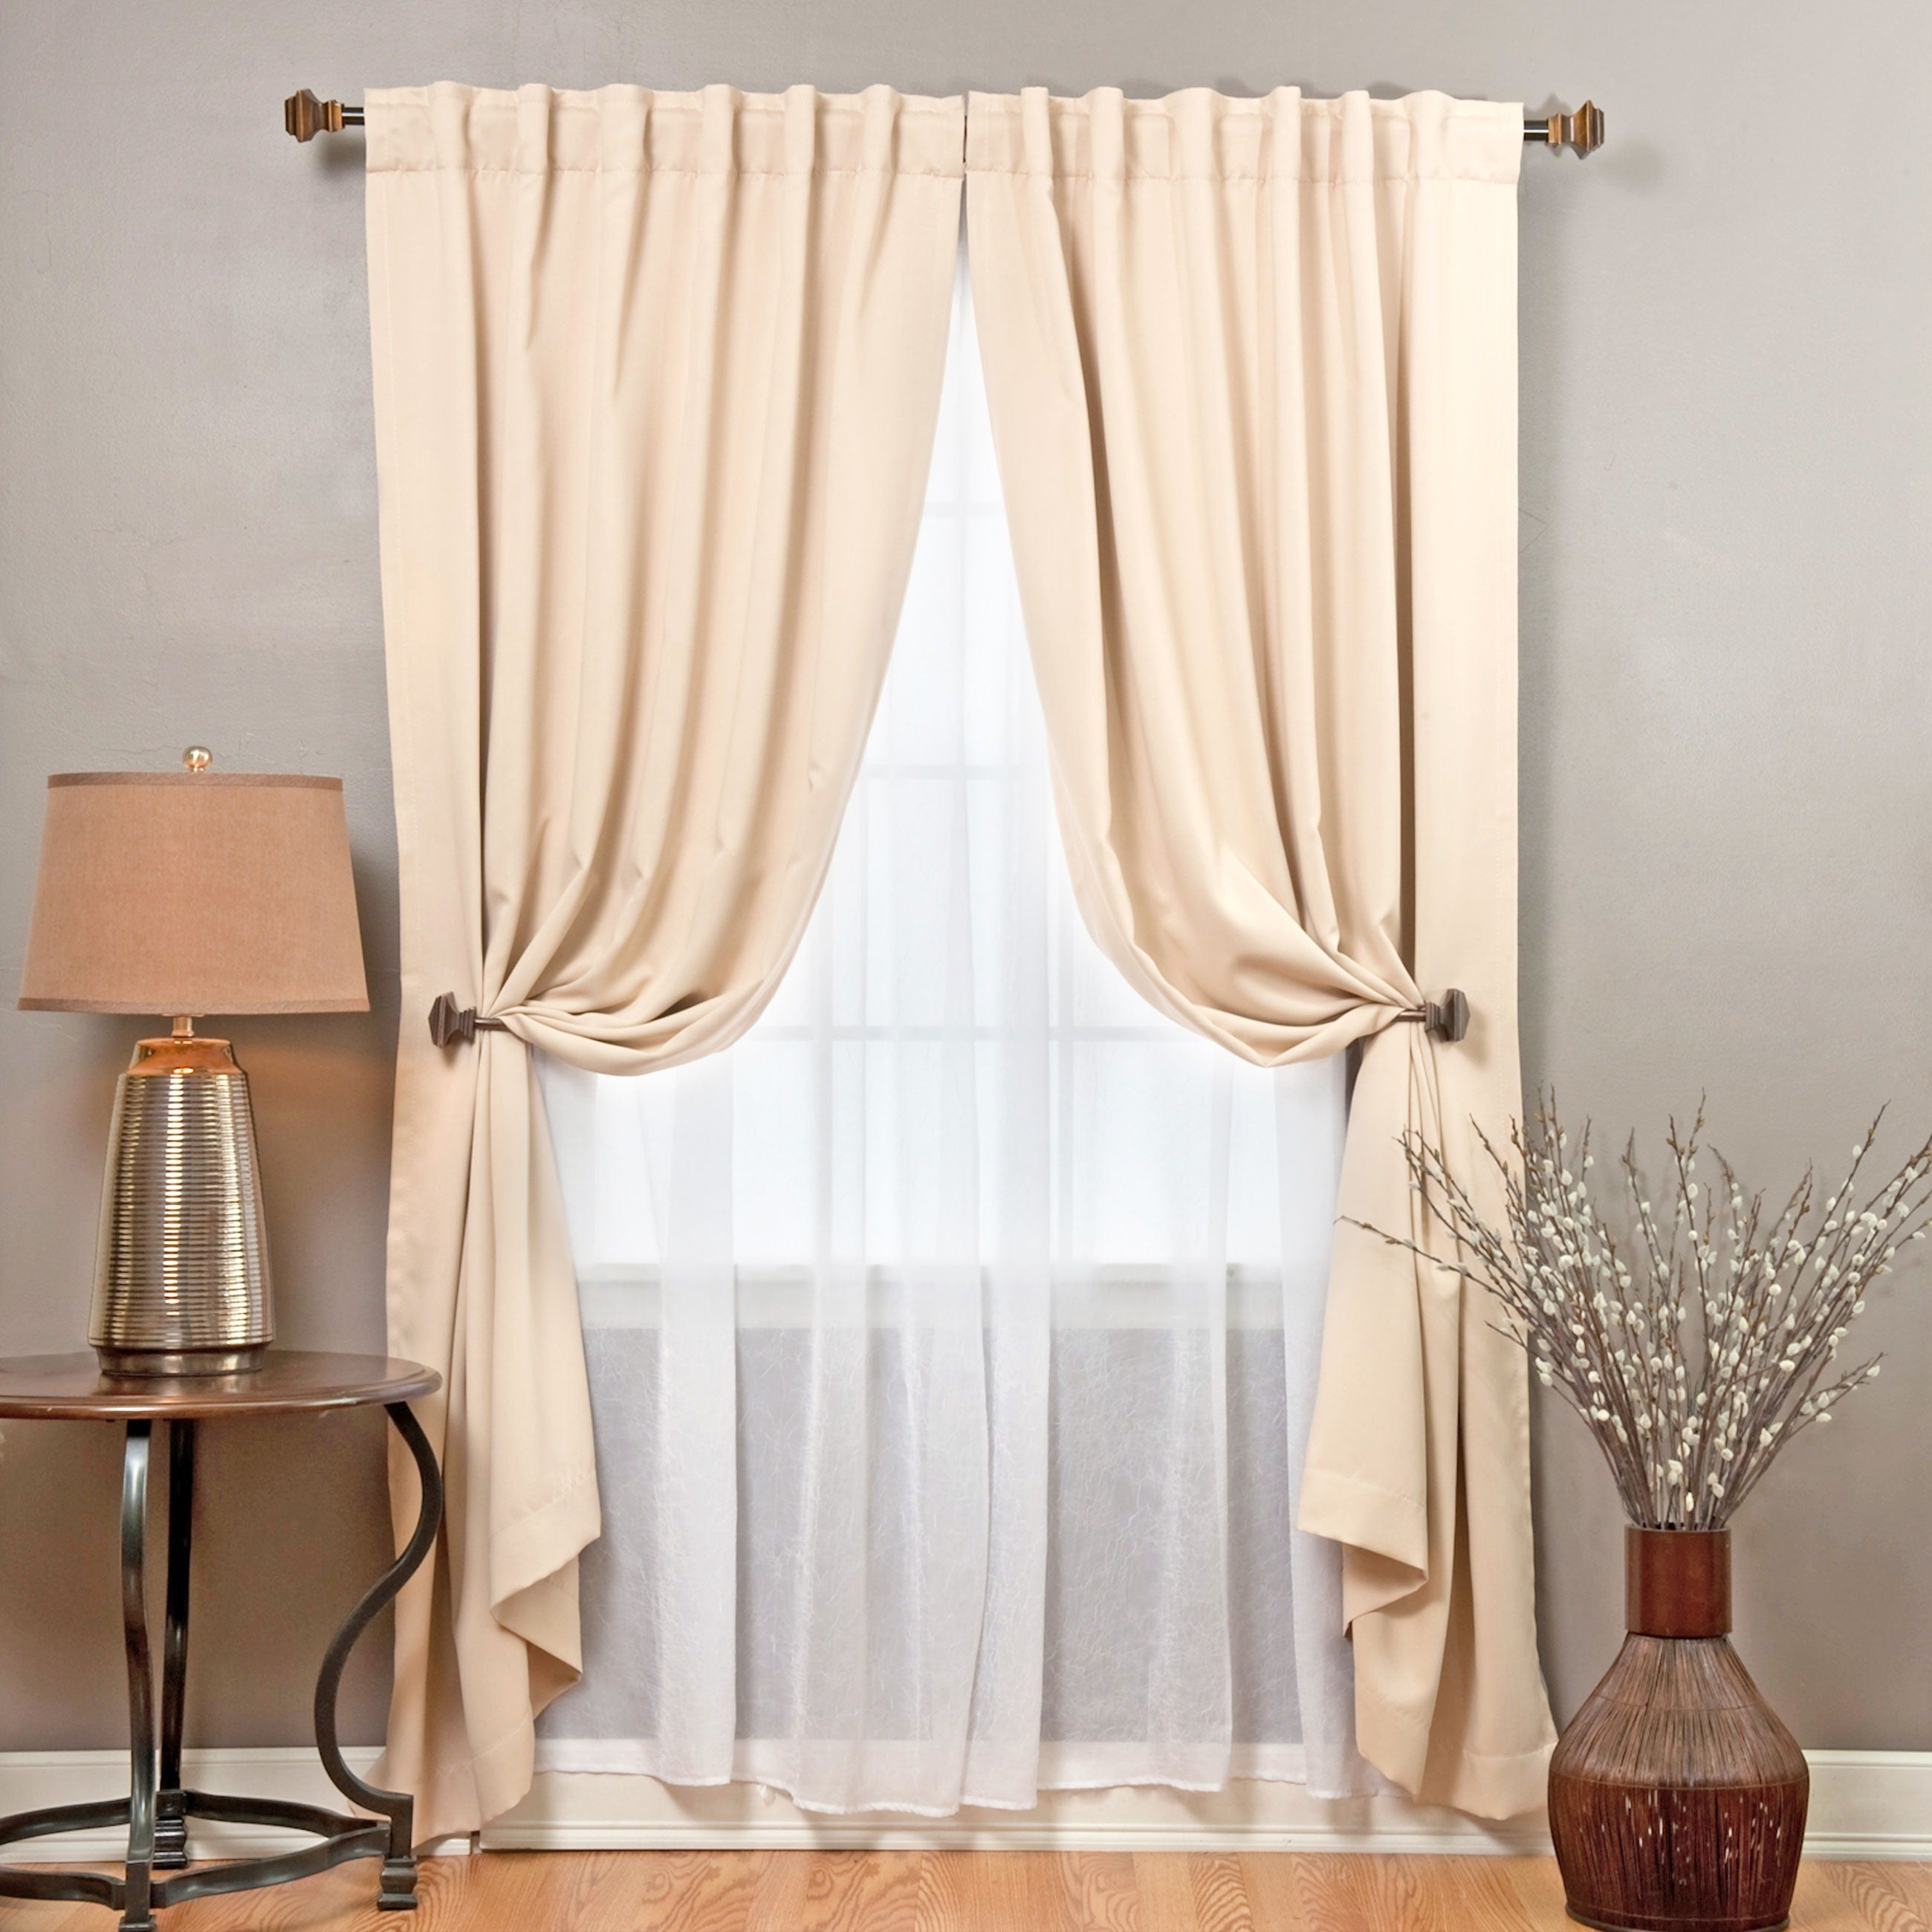 Aurora Home Mix And Match Blackout With Crushed Voile Sheer 4 Piece Panel Curtain Set 52 X 83 On Free Shipping Today